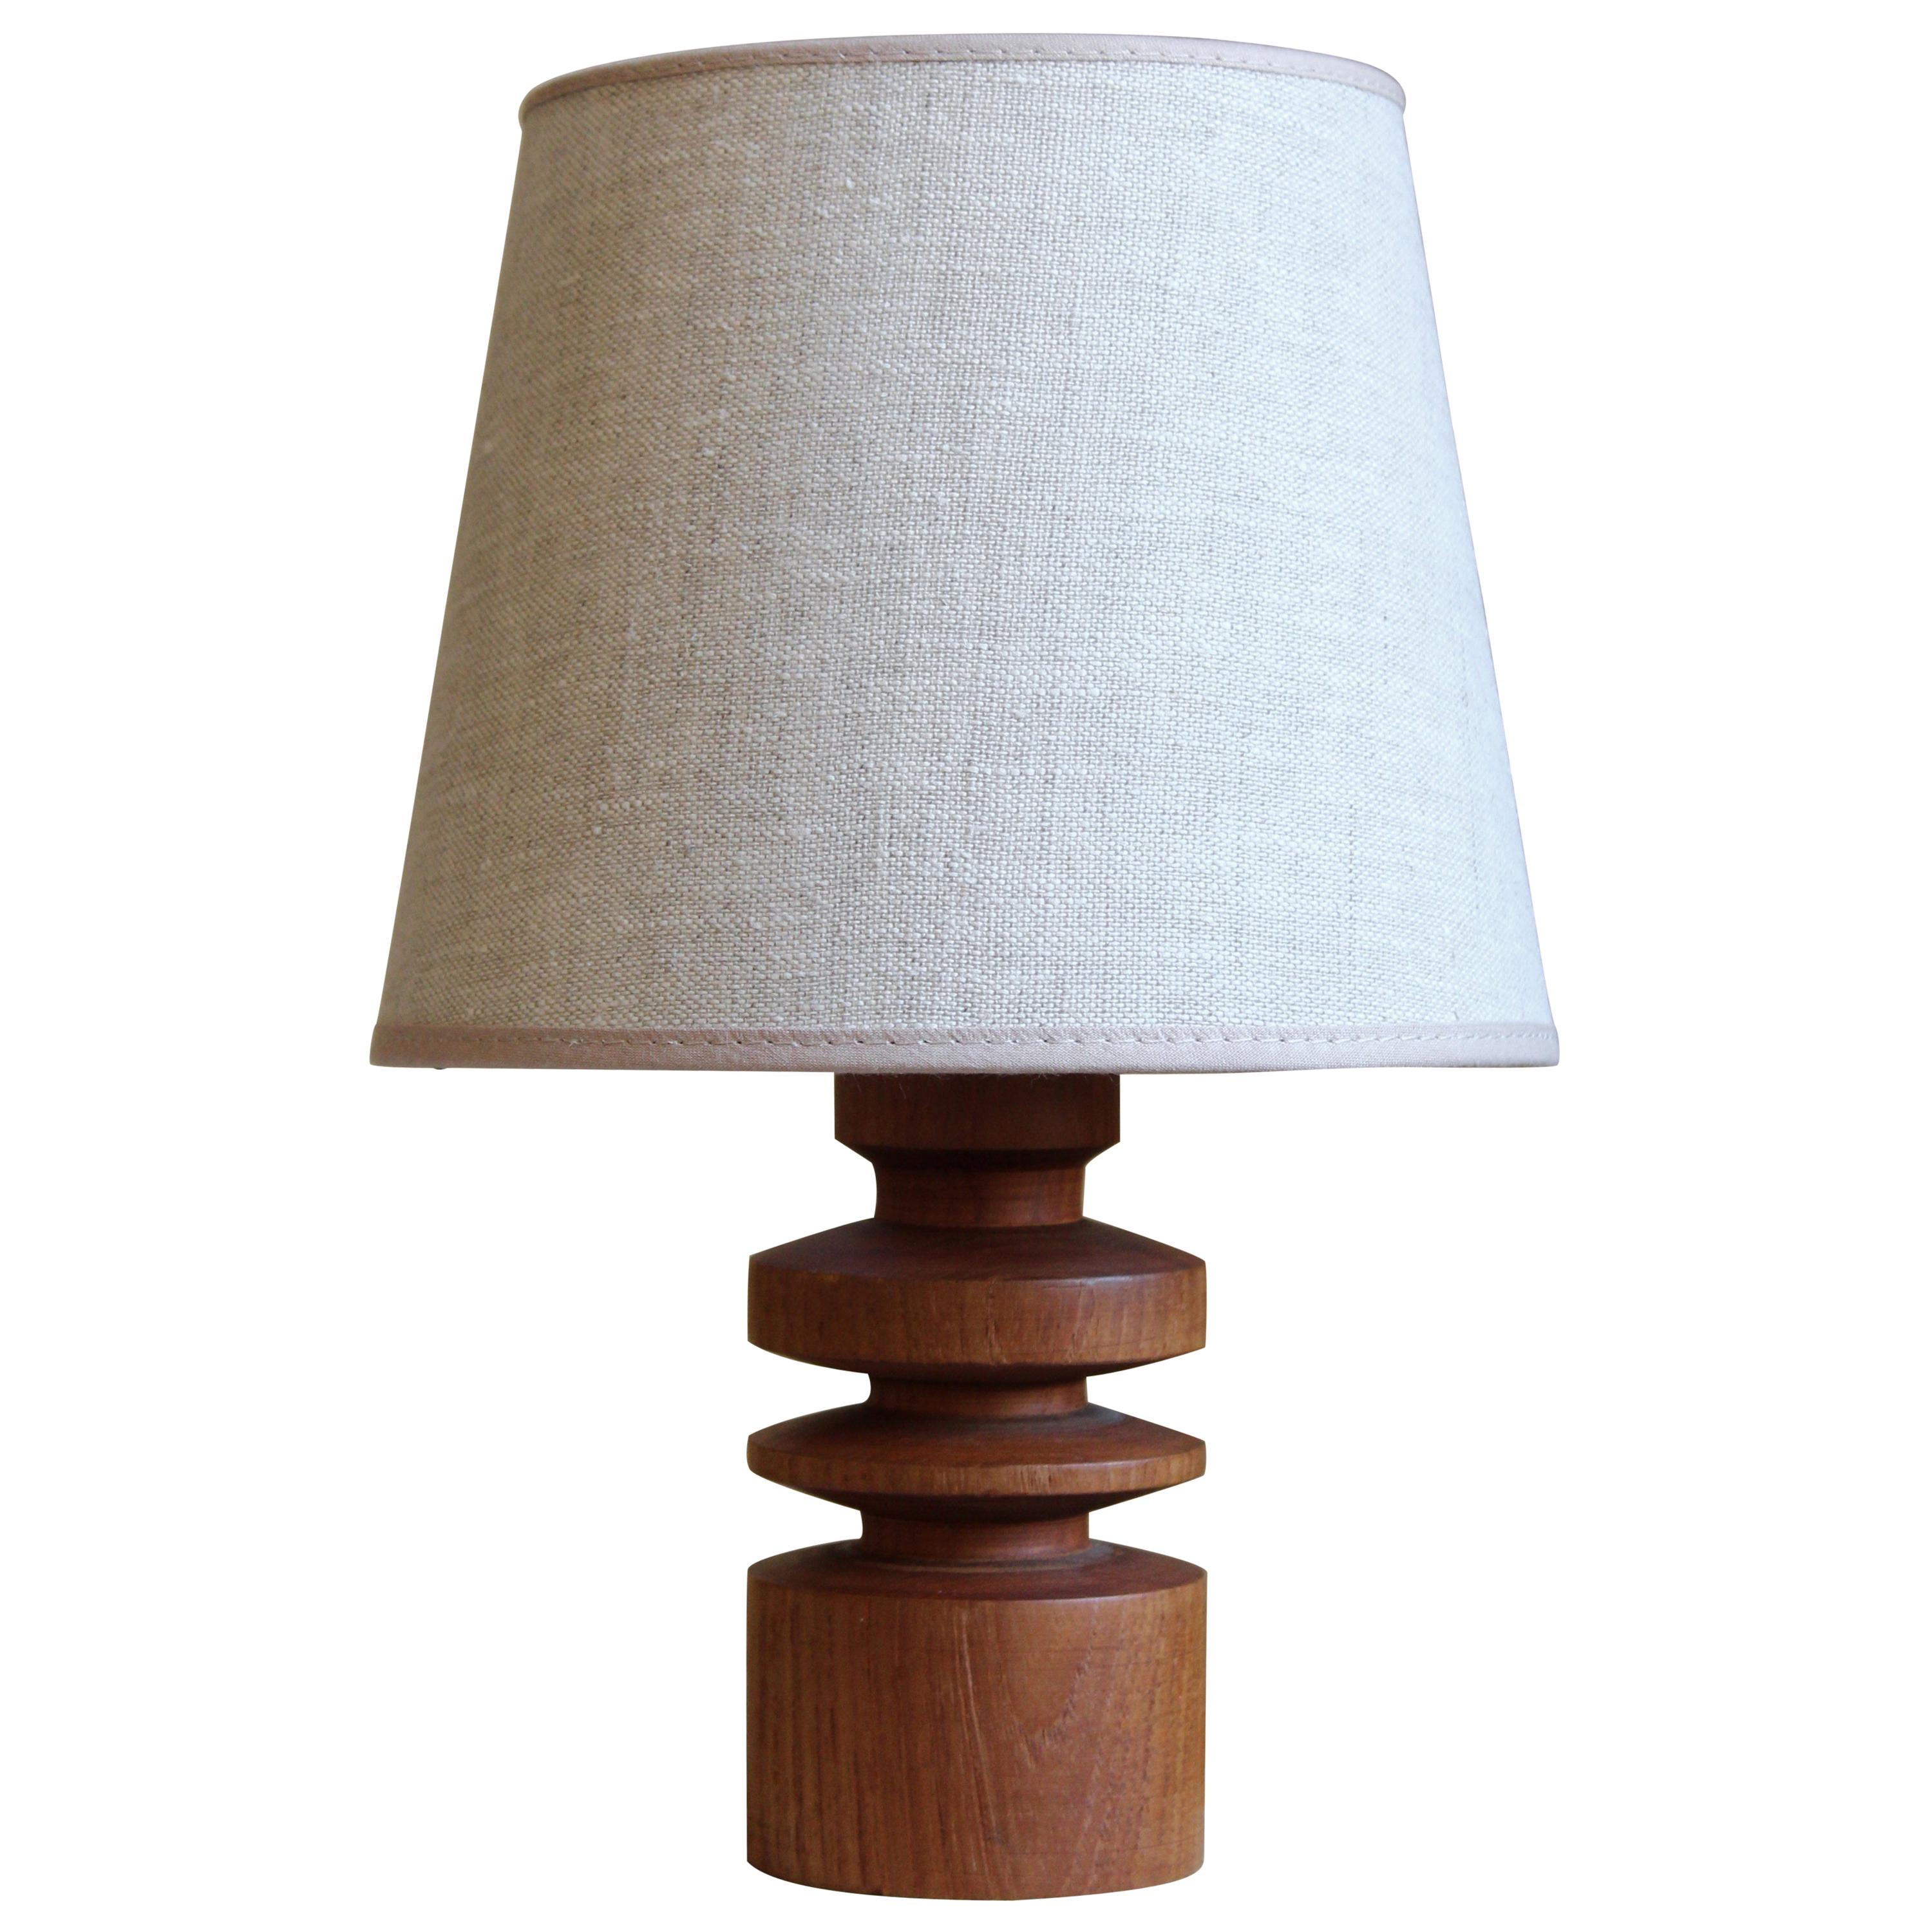 Philips, Small Table Lamp, Solid Teak, Linen, Netherlands, 1960s